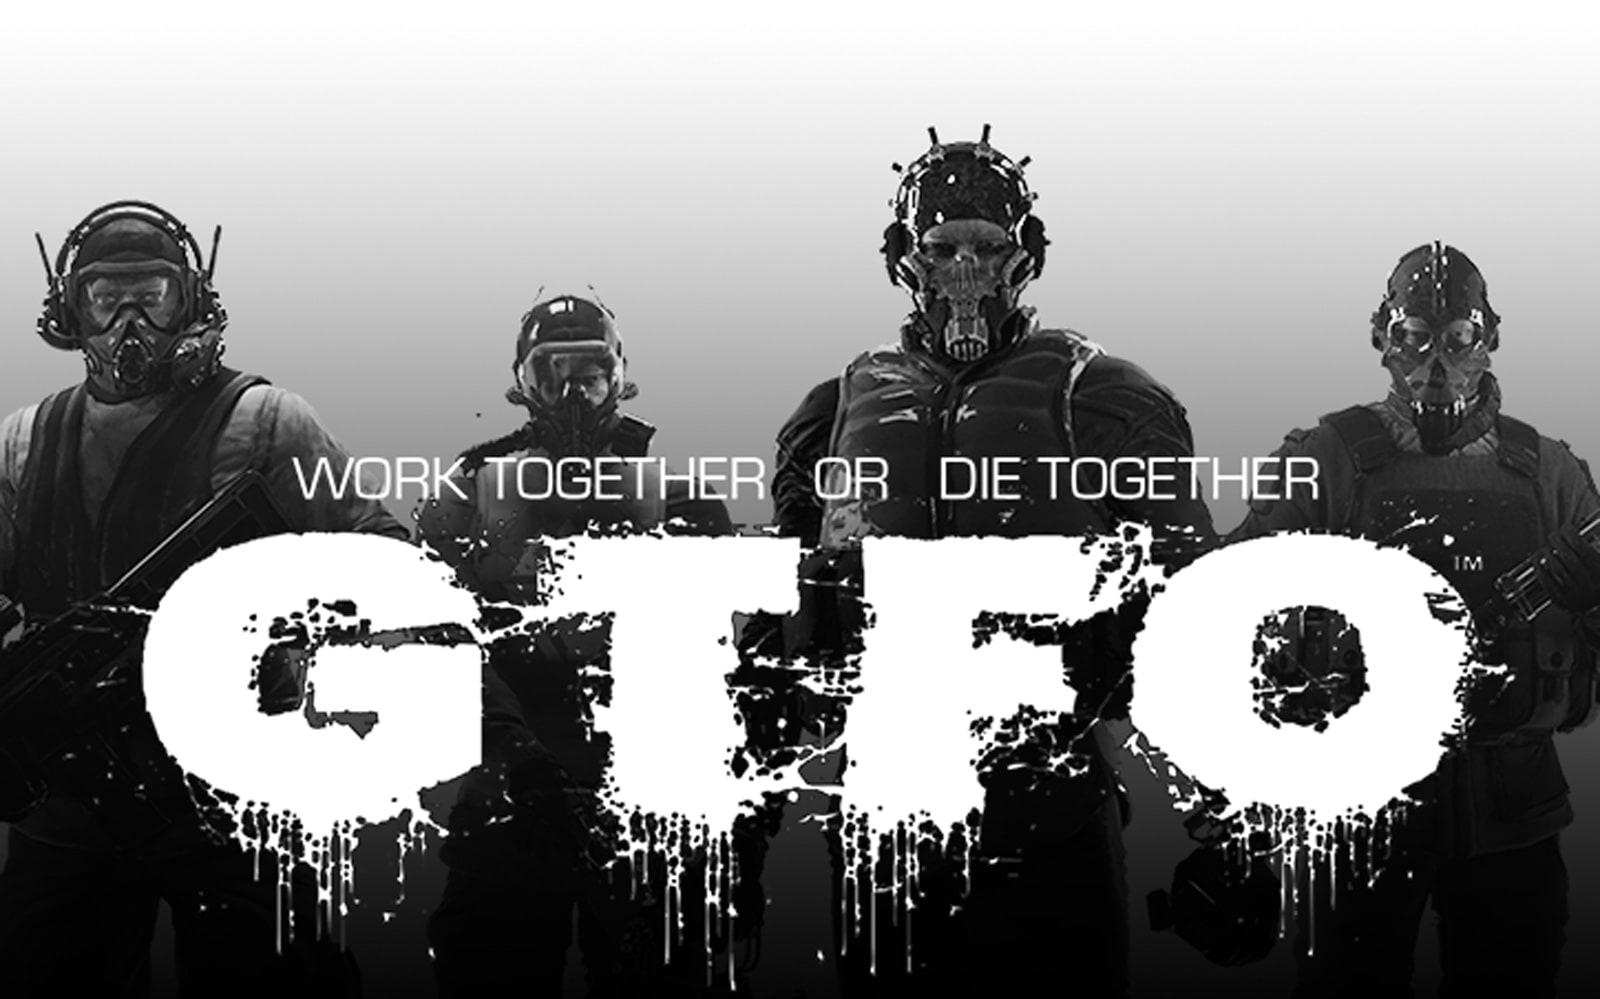 Co-operative horror shooter 'GTFO' hits Steam Early Access   Engadget